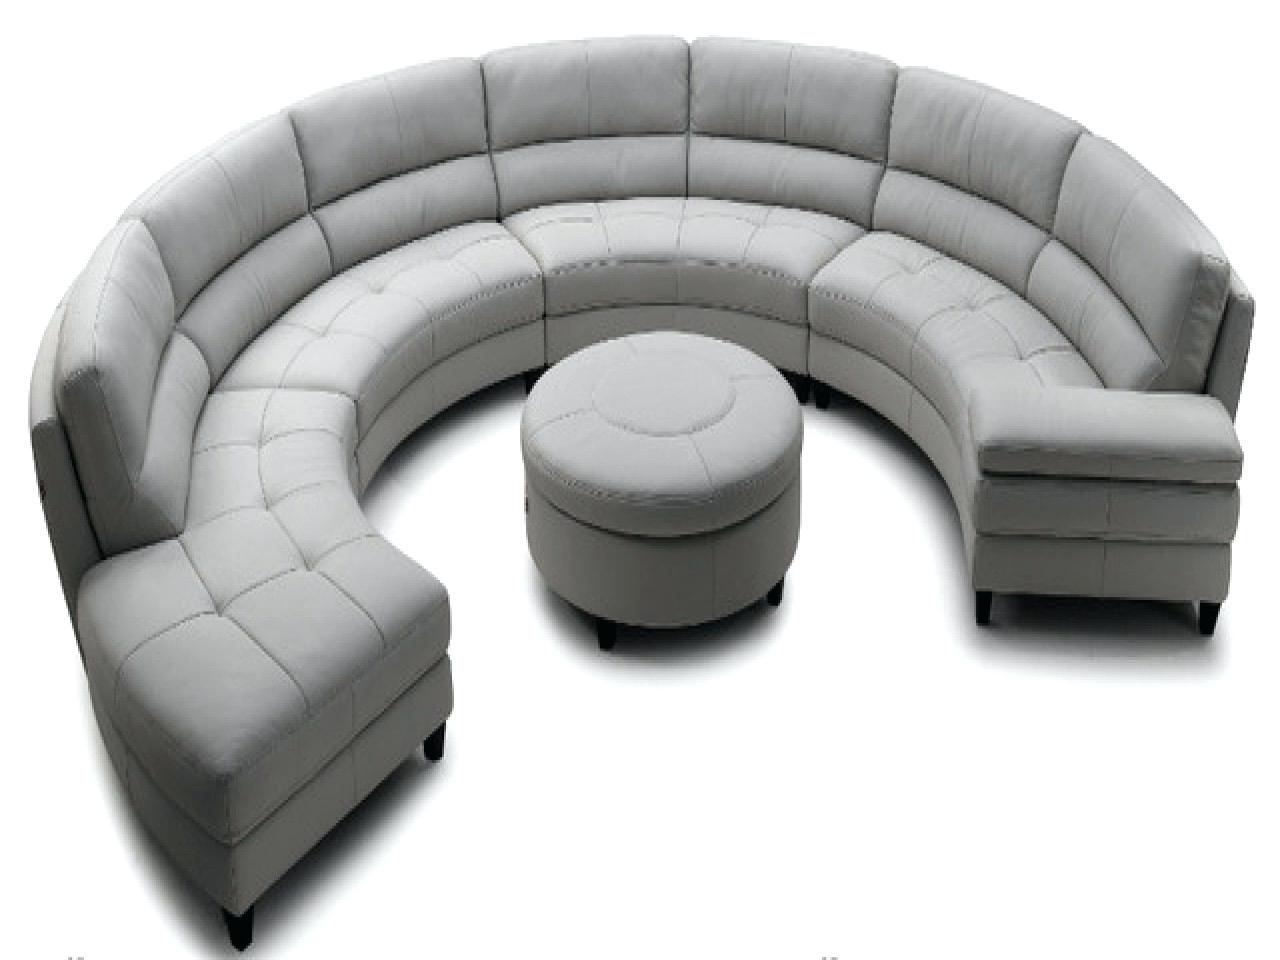 Popular Circular Sectional Sofa Sa Sas Bed Semi Circle Couches Modern With Round Sofas (View 5 of 15)